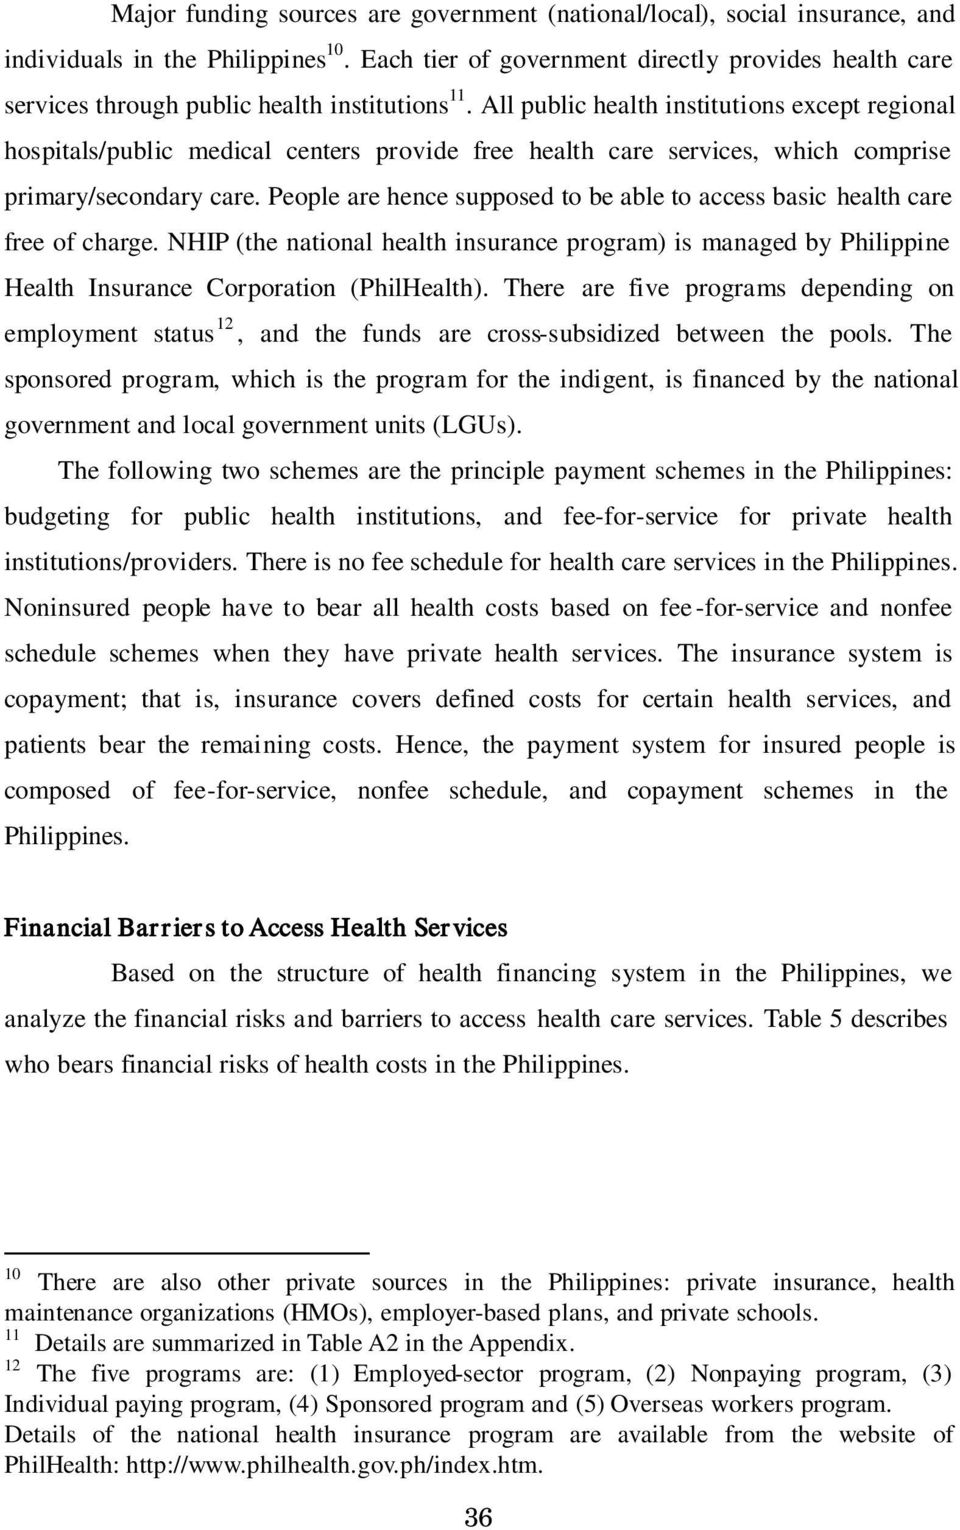 Peoplearehencesupposedtobeabletoaccessbasichealthcare freeofcharge. NHIP(thenationalhealthinsuranceprogram)ismanagedbyPhilippine HealthInsuranceCorporation(PhilHealth).